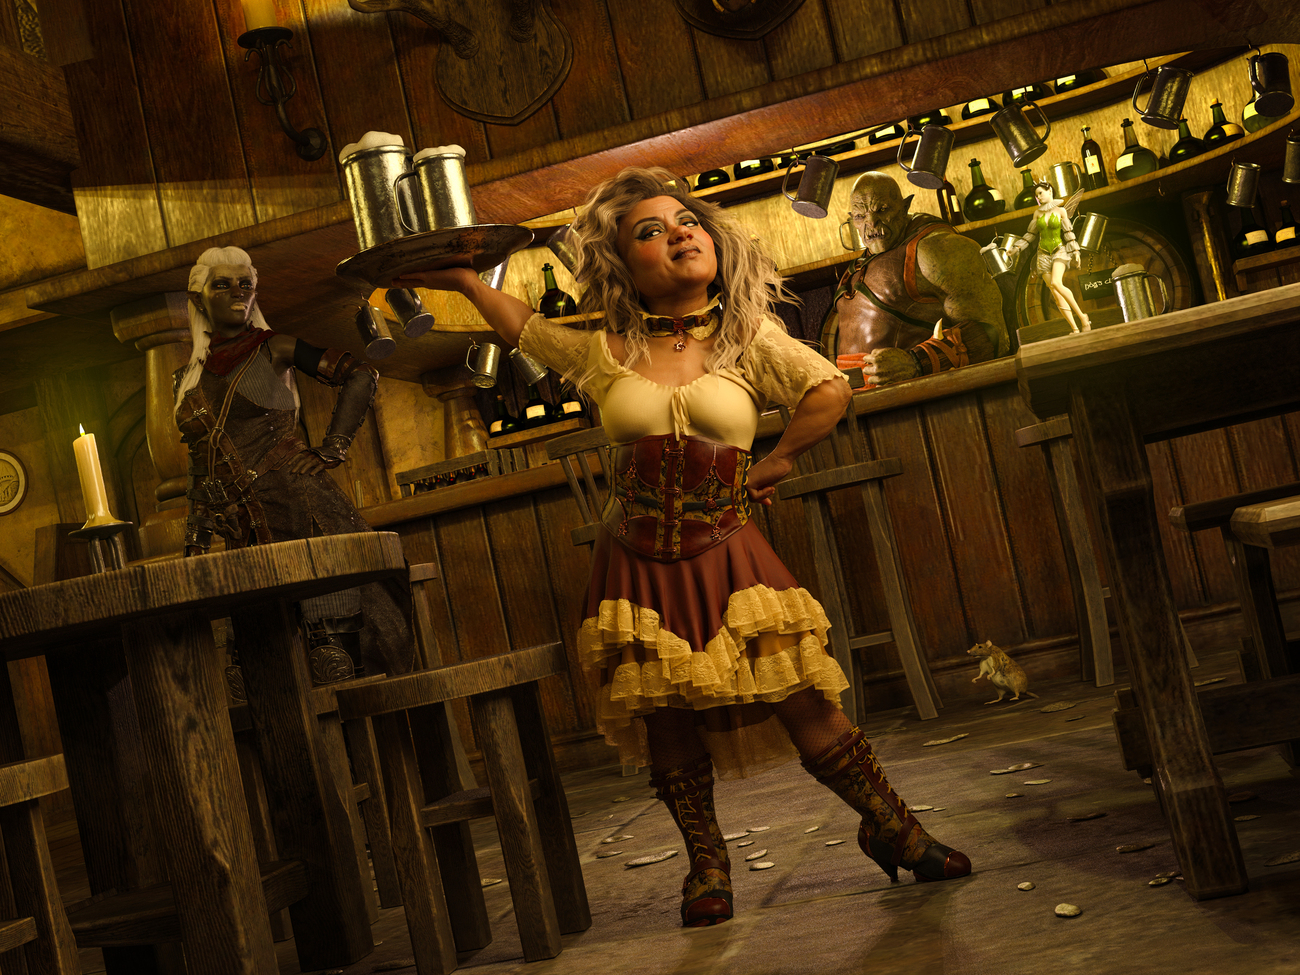 The Barmaid by torgas